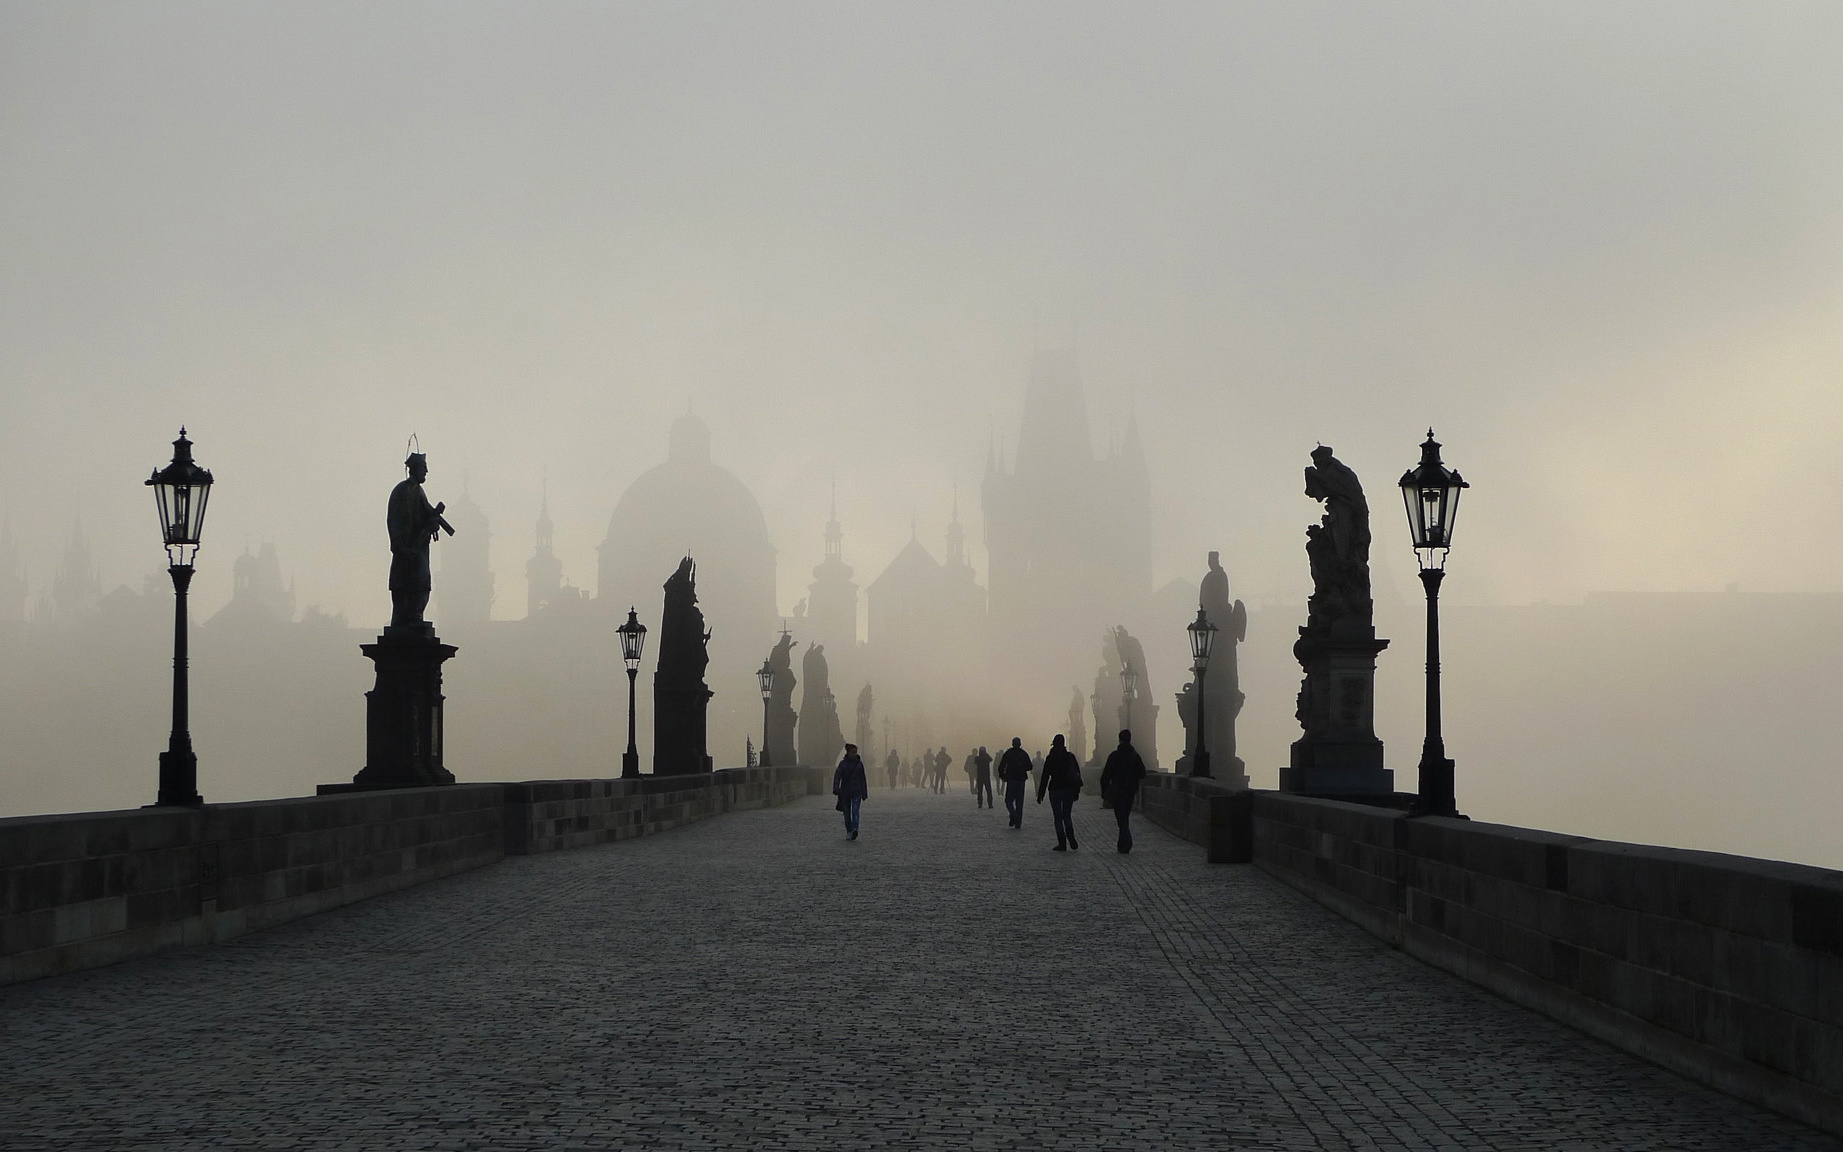 Prague: Charles Bridge in the Mist (Explored)